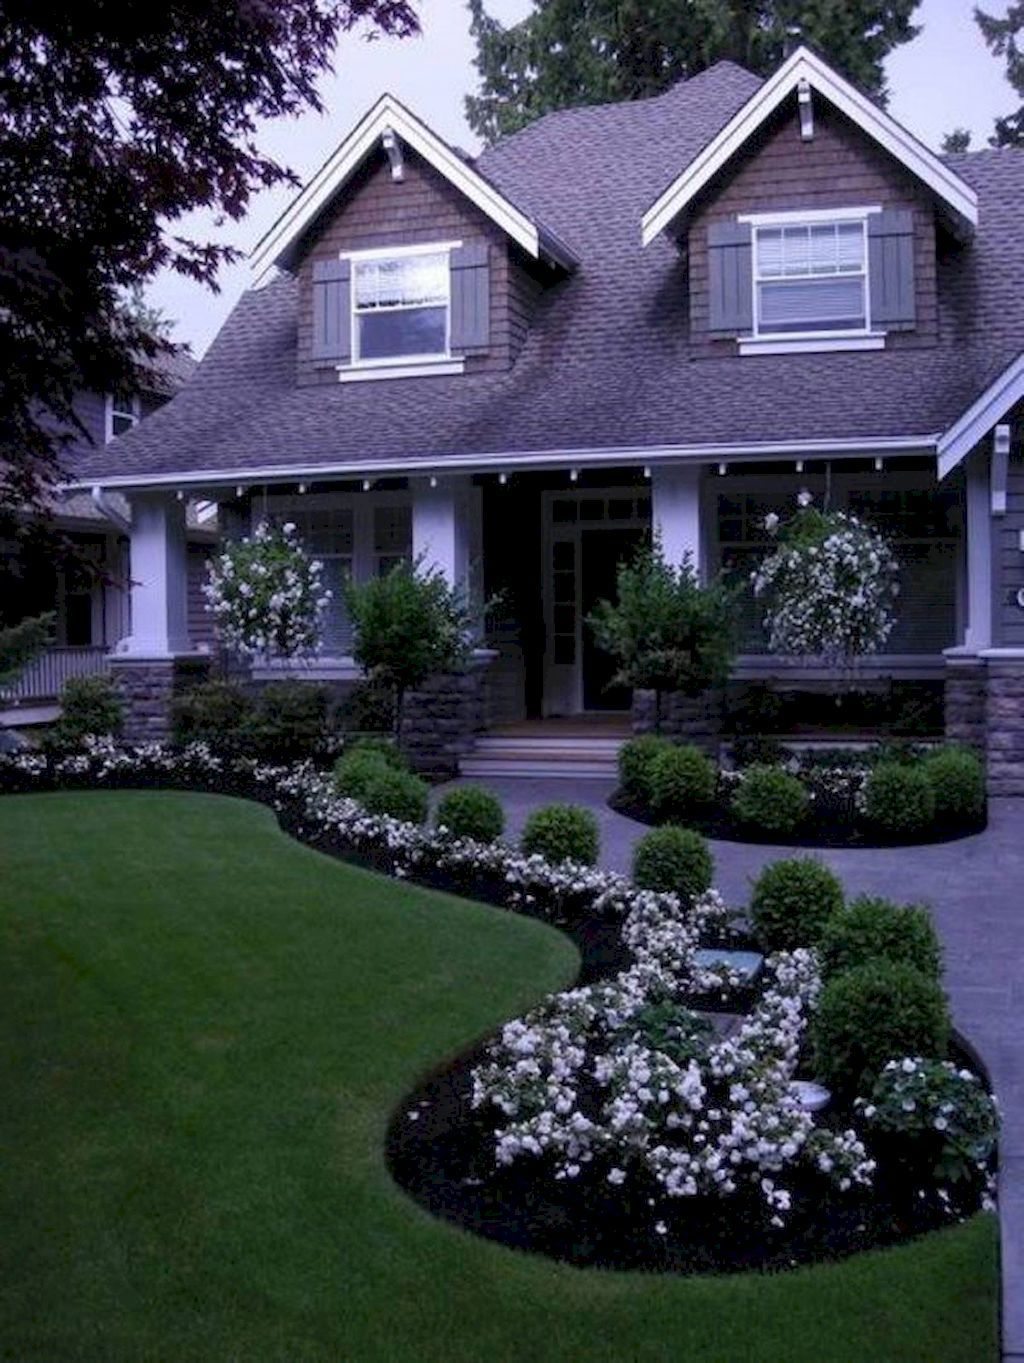 40 beautiful front yard landscaping ideas yard for Landscaping ideas for my front yard